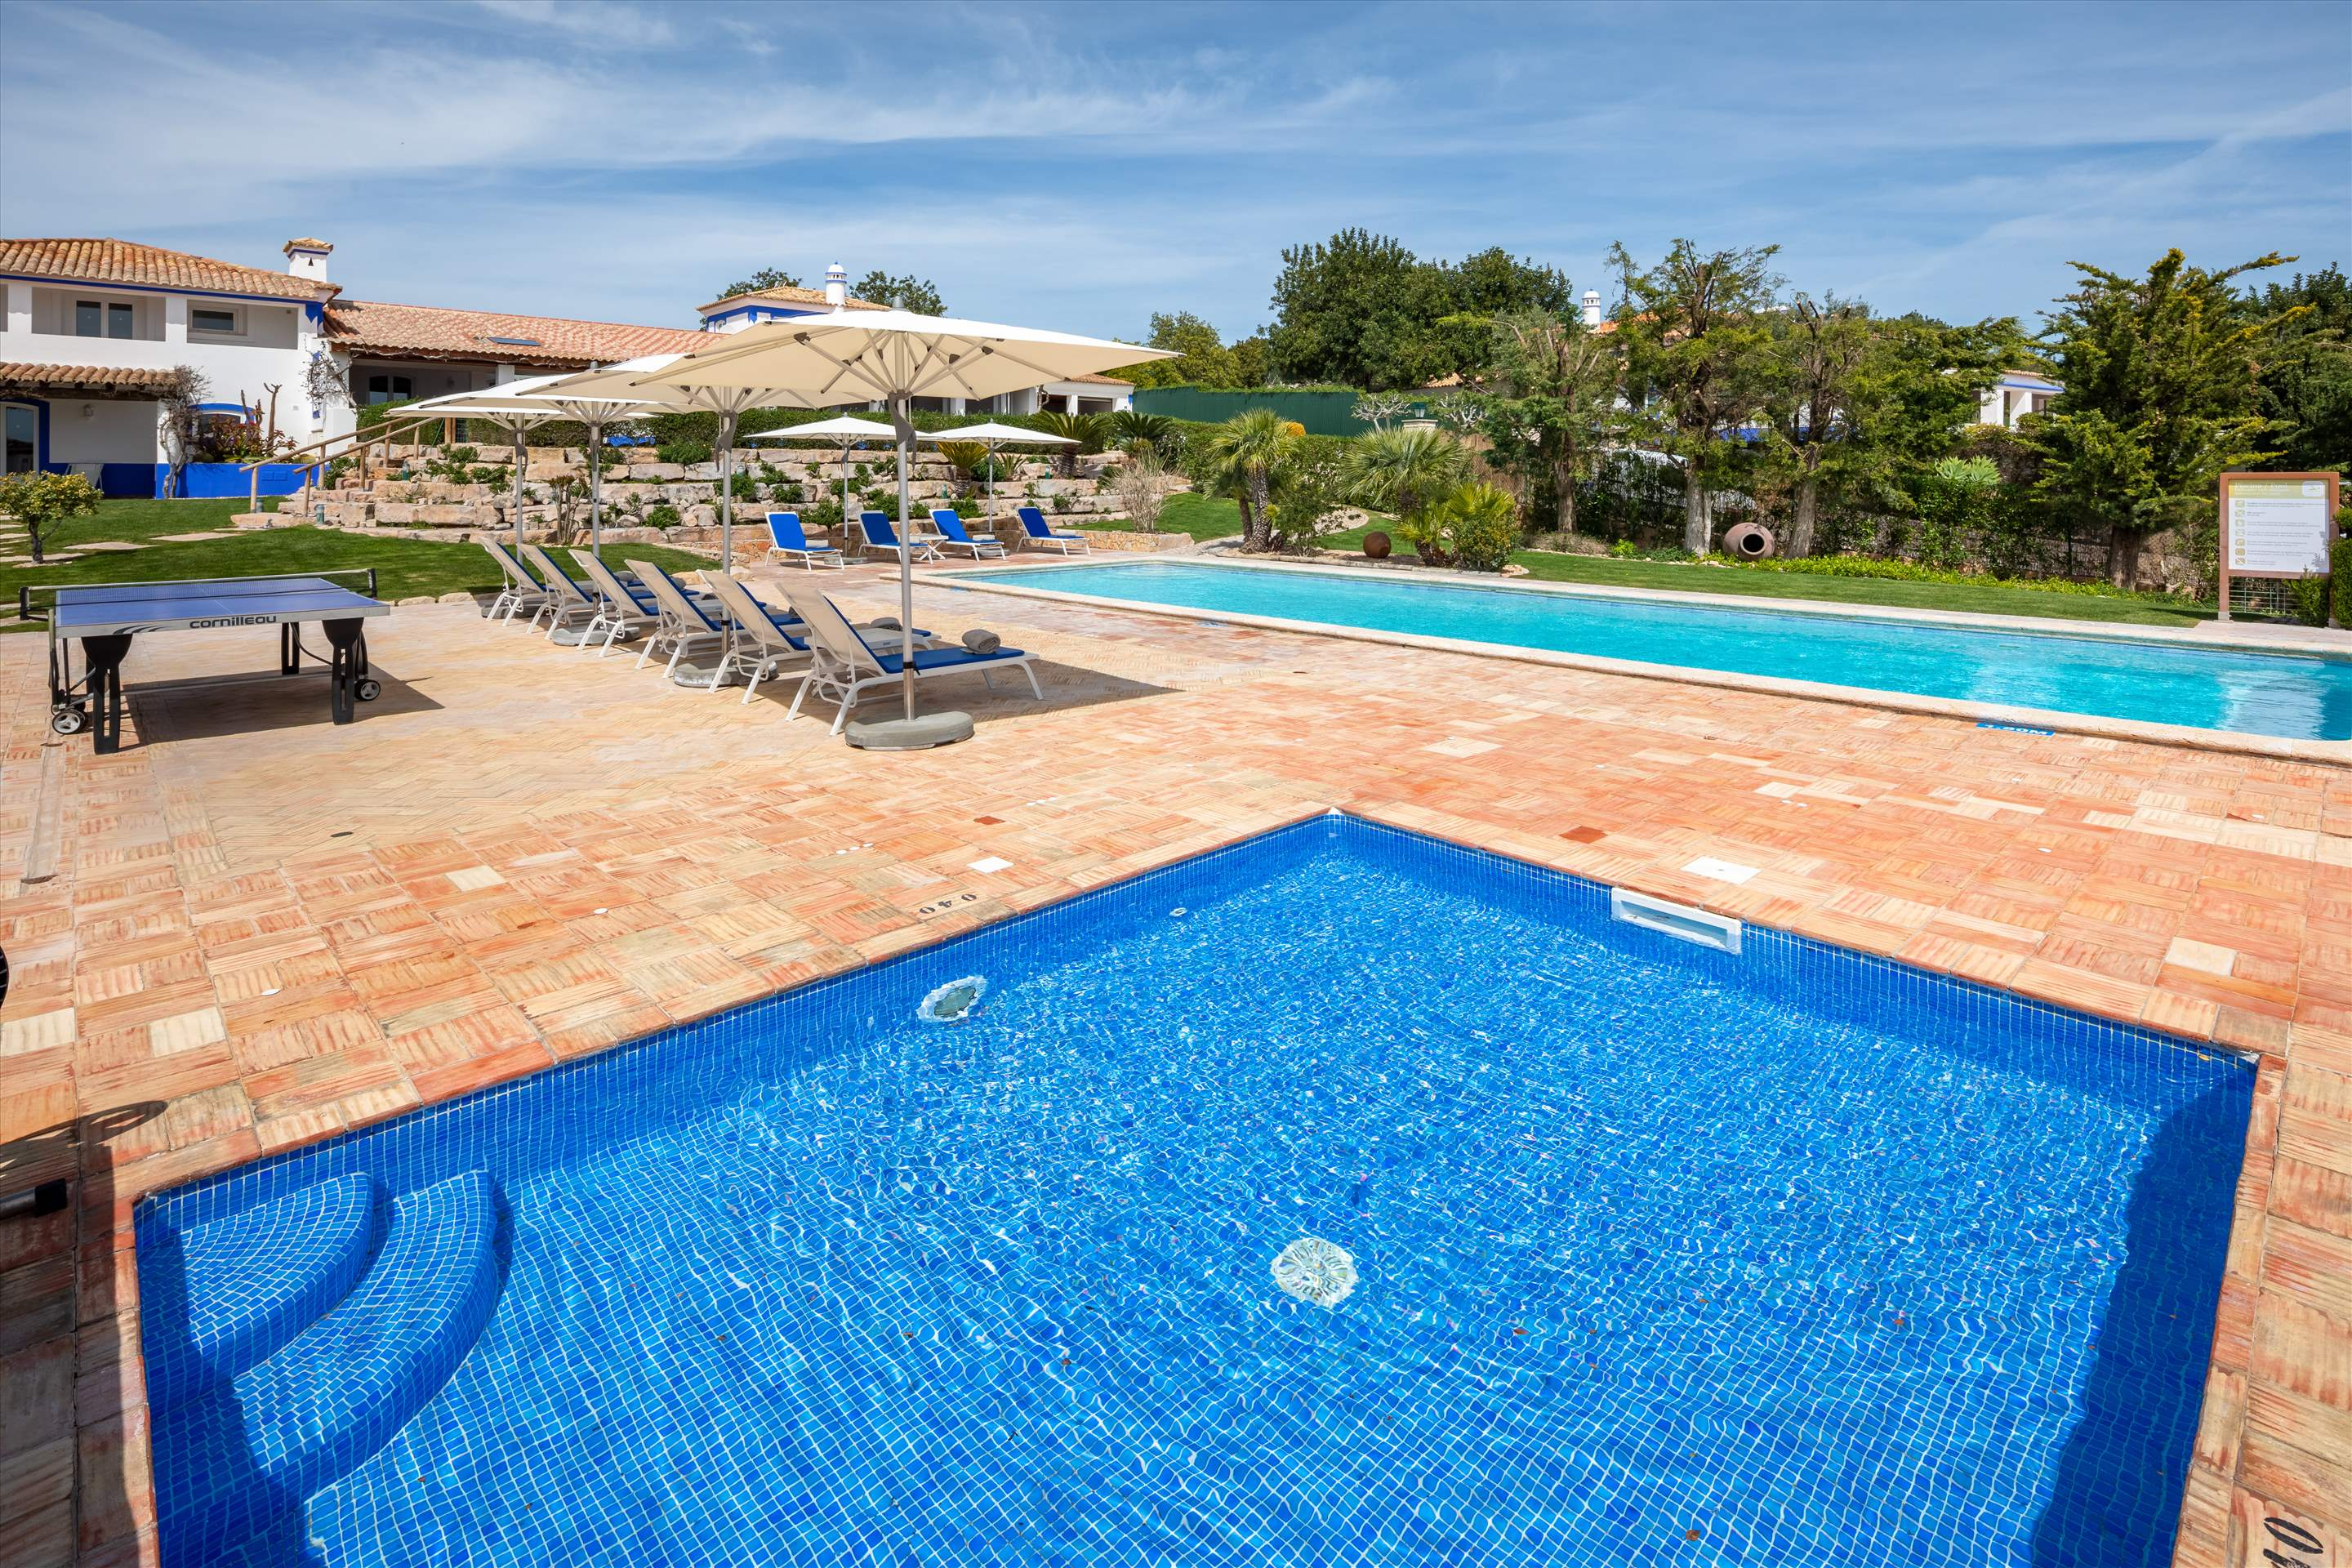 Casa da Montanha, 11-12 persons, 7 bedroom villa in Vilamoura Area, Algarve Photo #14